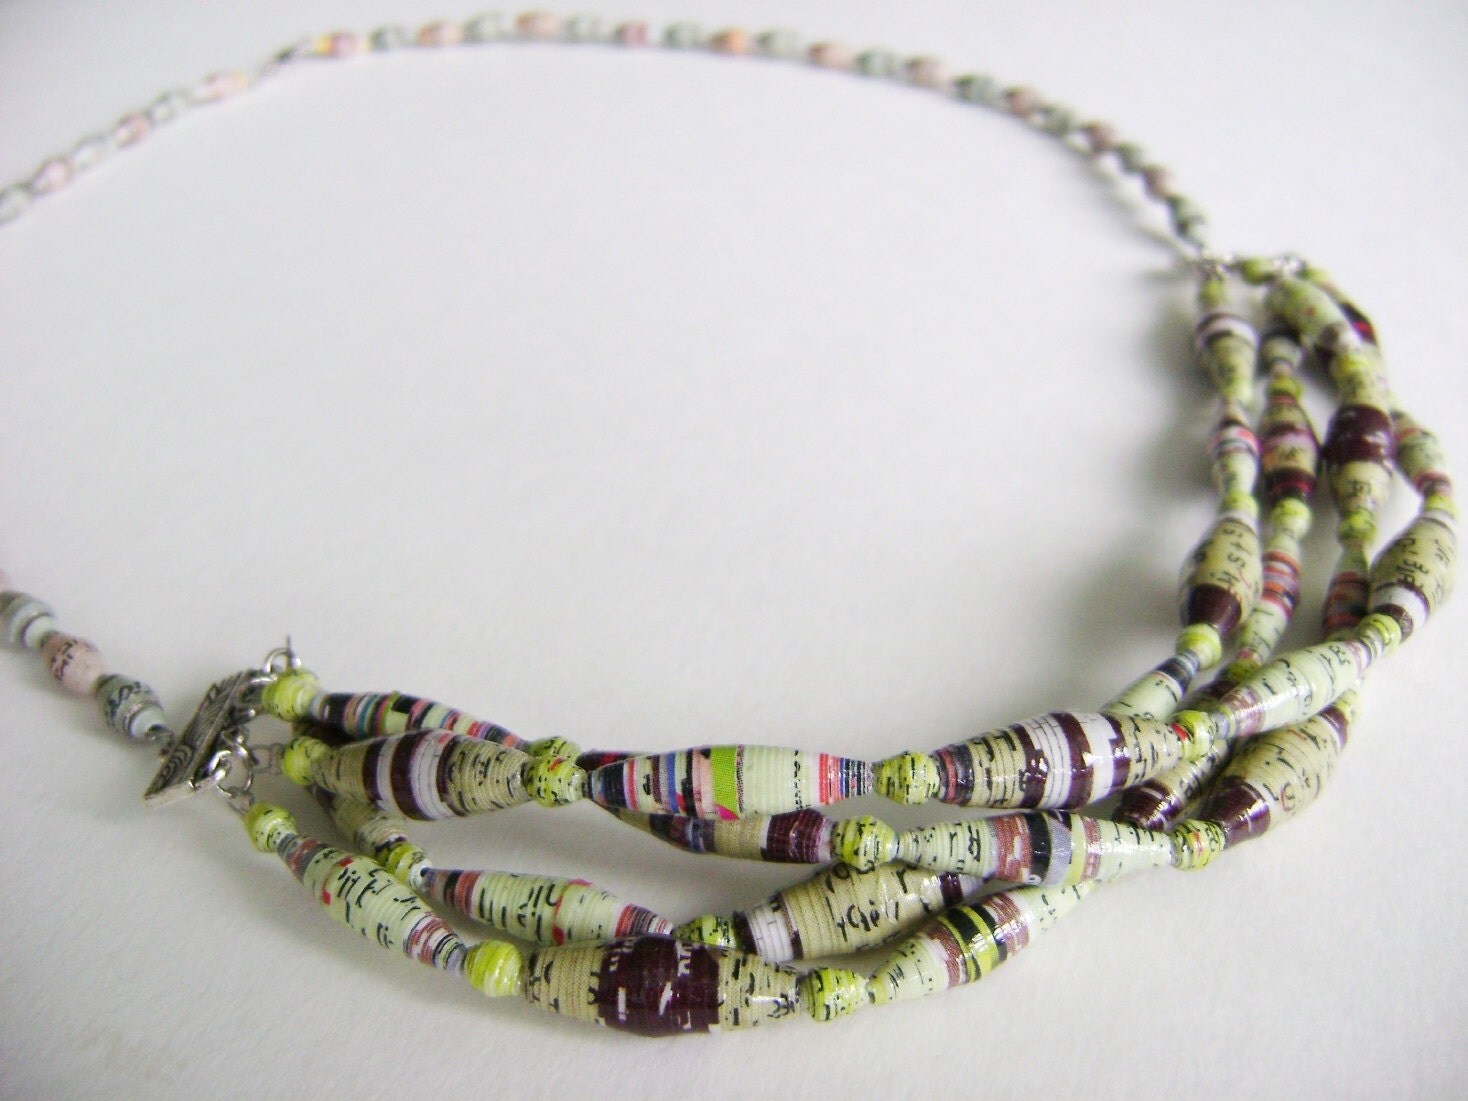 Recycled Paper Bead Necklace- Multi-Stranded Earth-tone Bead, Eco-Friendly, Lightweight Necklace - NightLightCrafts